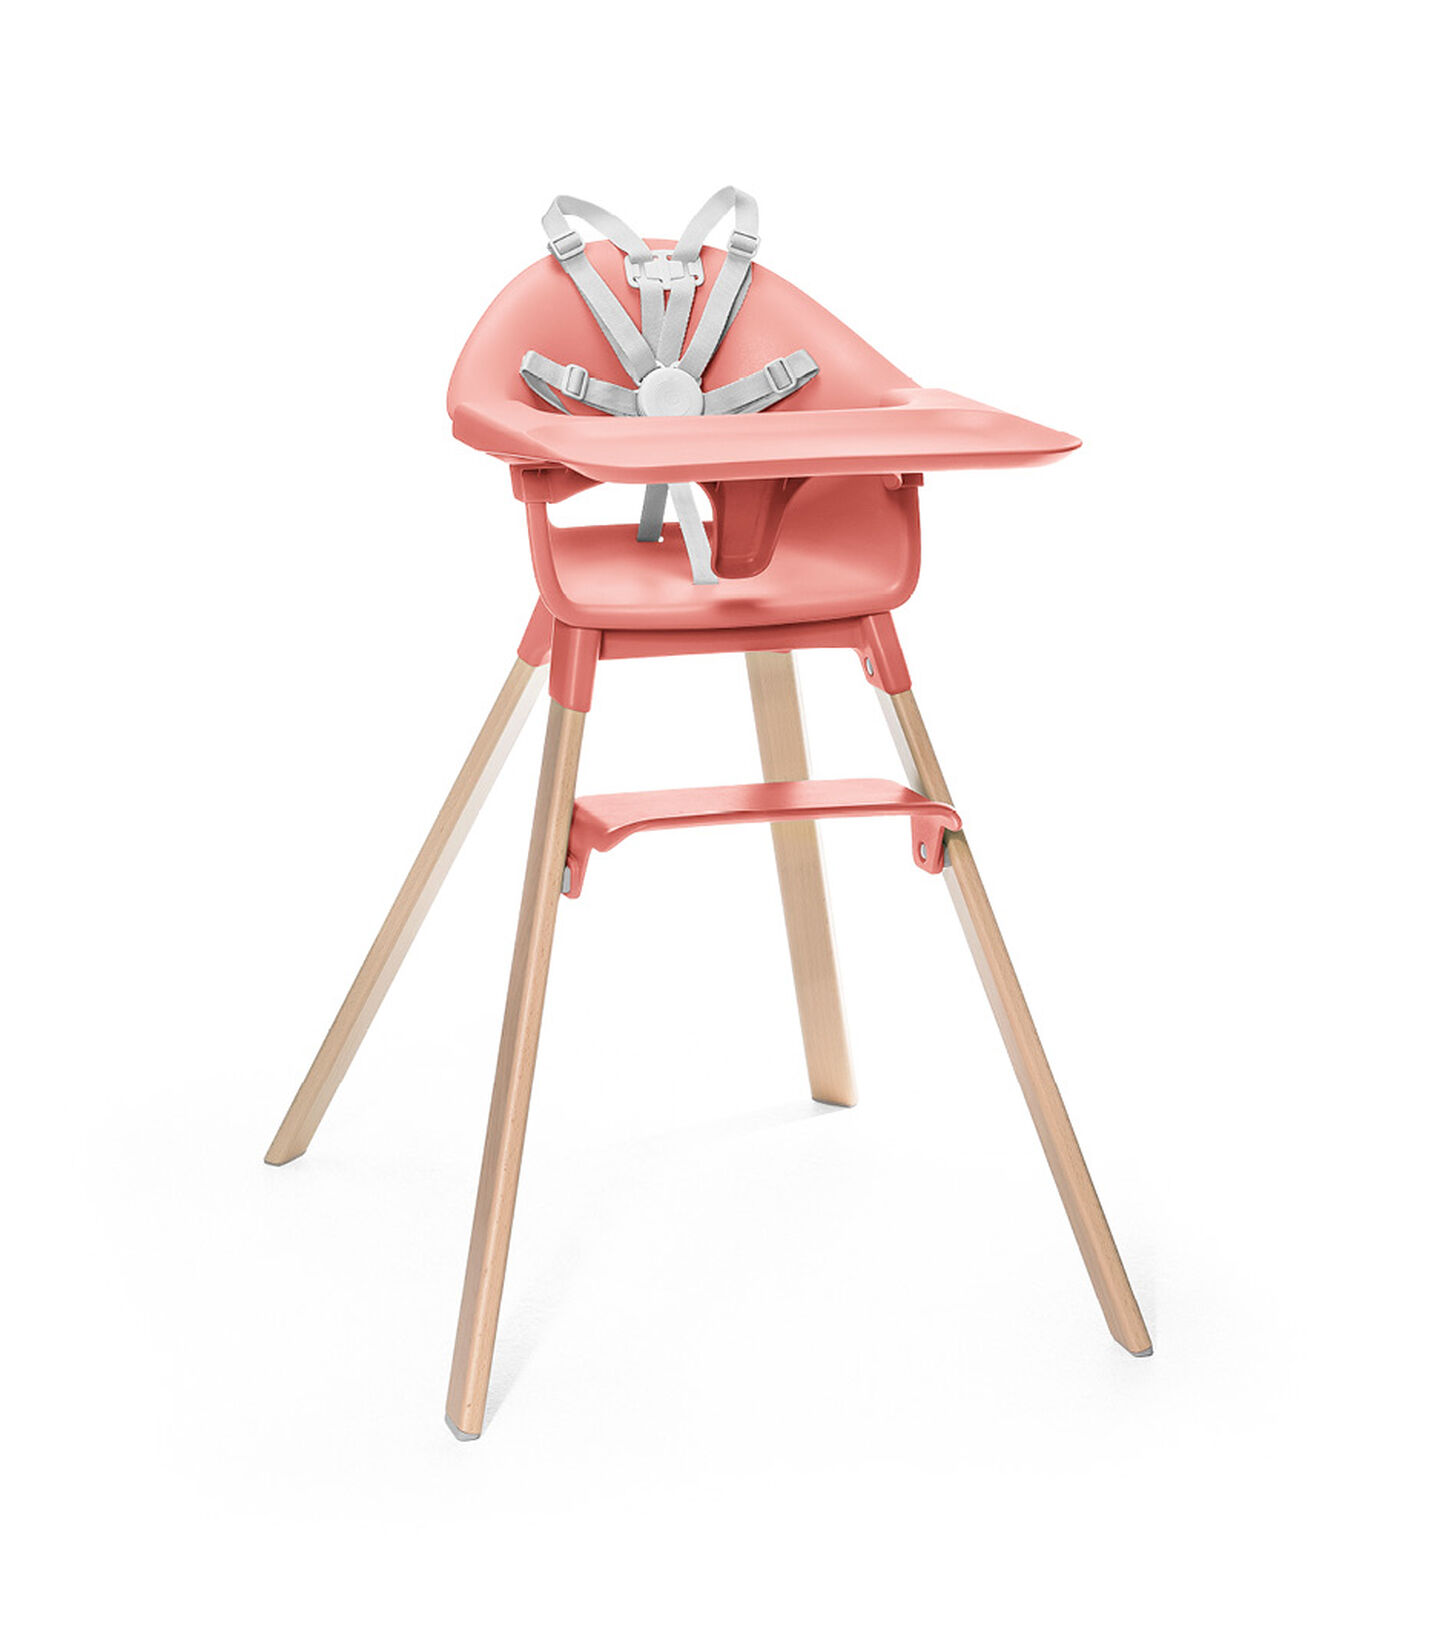 Stokke® Clikk™ High Chair. Natural Beech wood and Sunny Coral plastic parts. Stokke® Harness and Tray attached. view 1